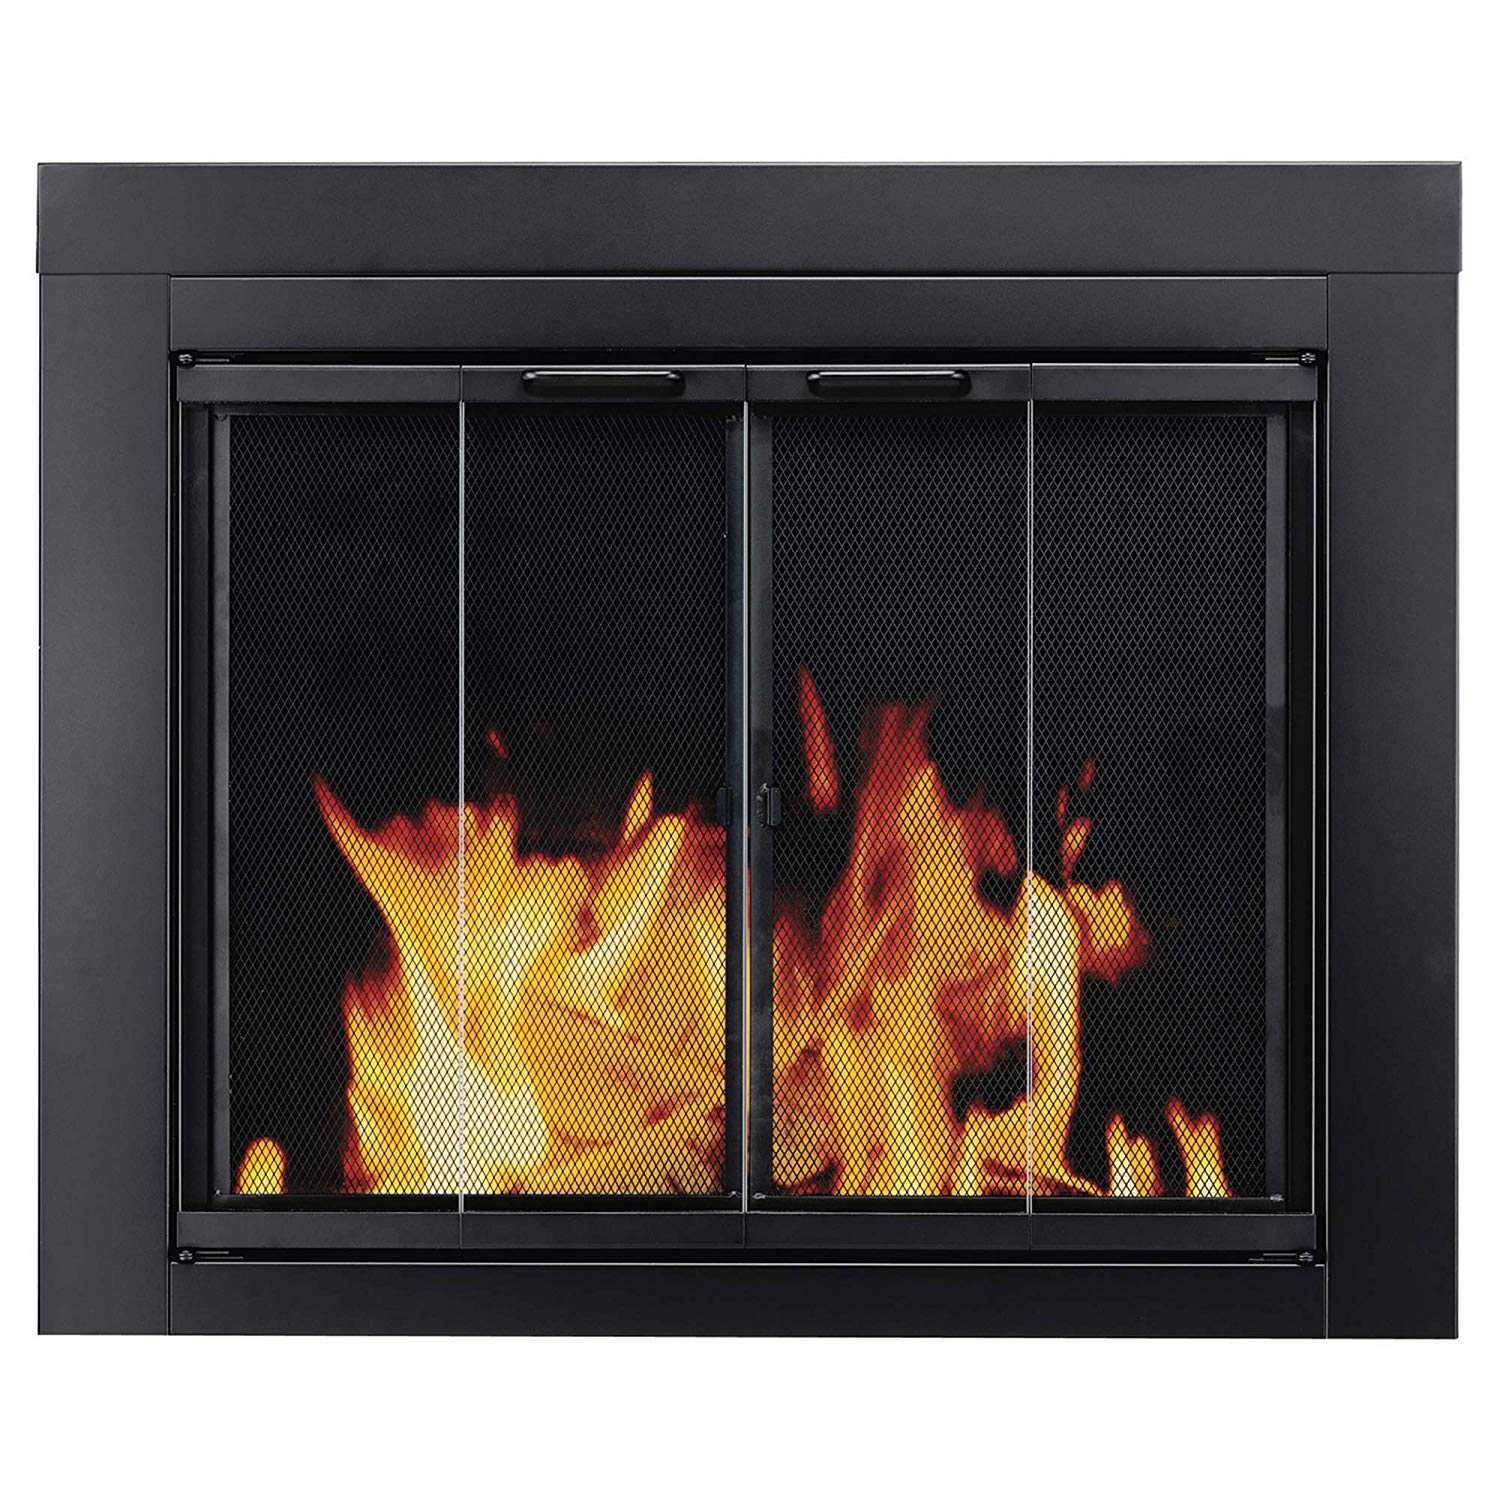 Fireplace Screen Replacement Beautiful Pleasant Hearth at 1000 ascot Fireplace Glass Door Black Small